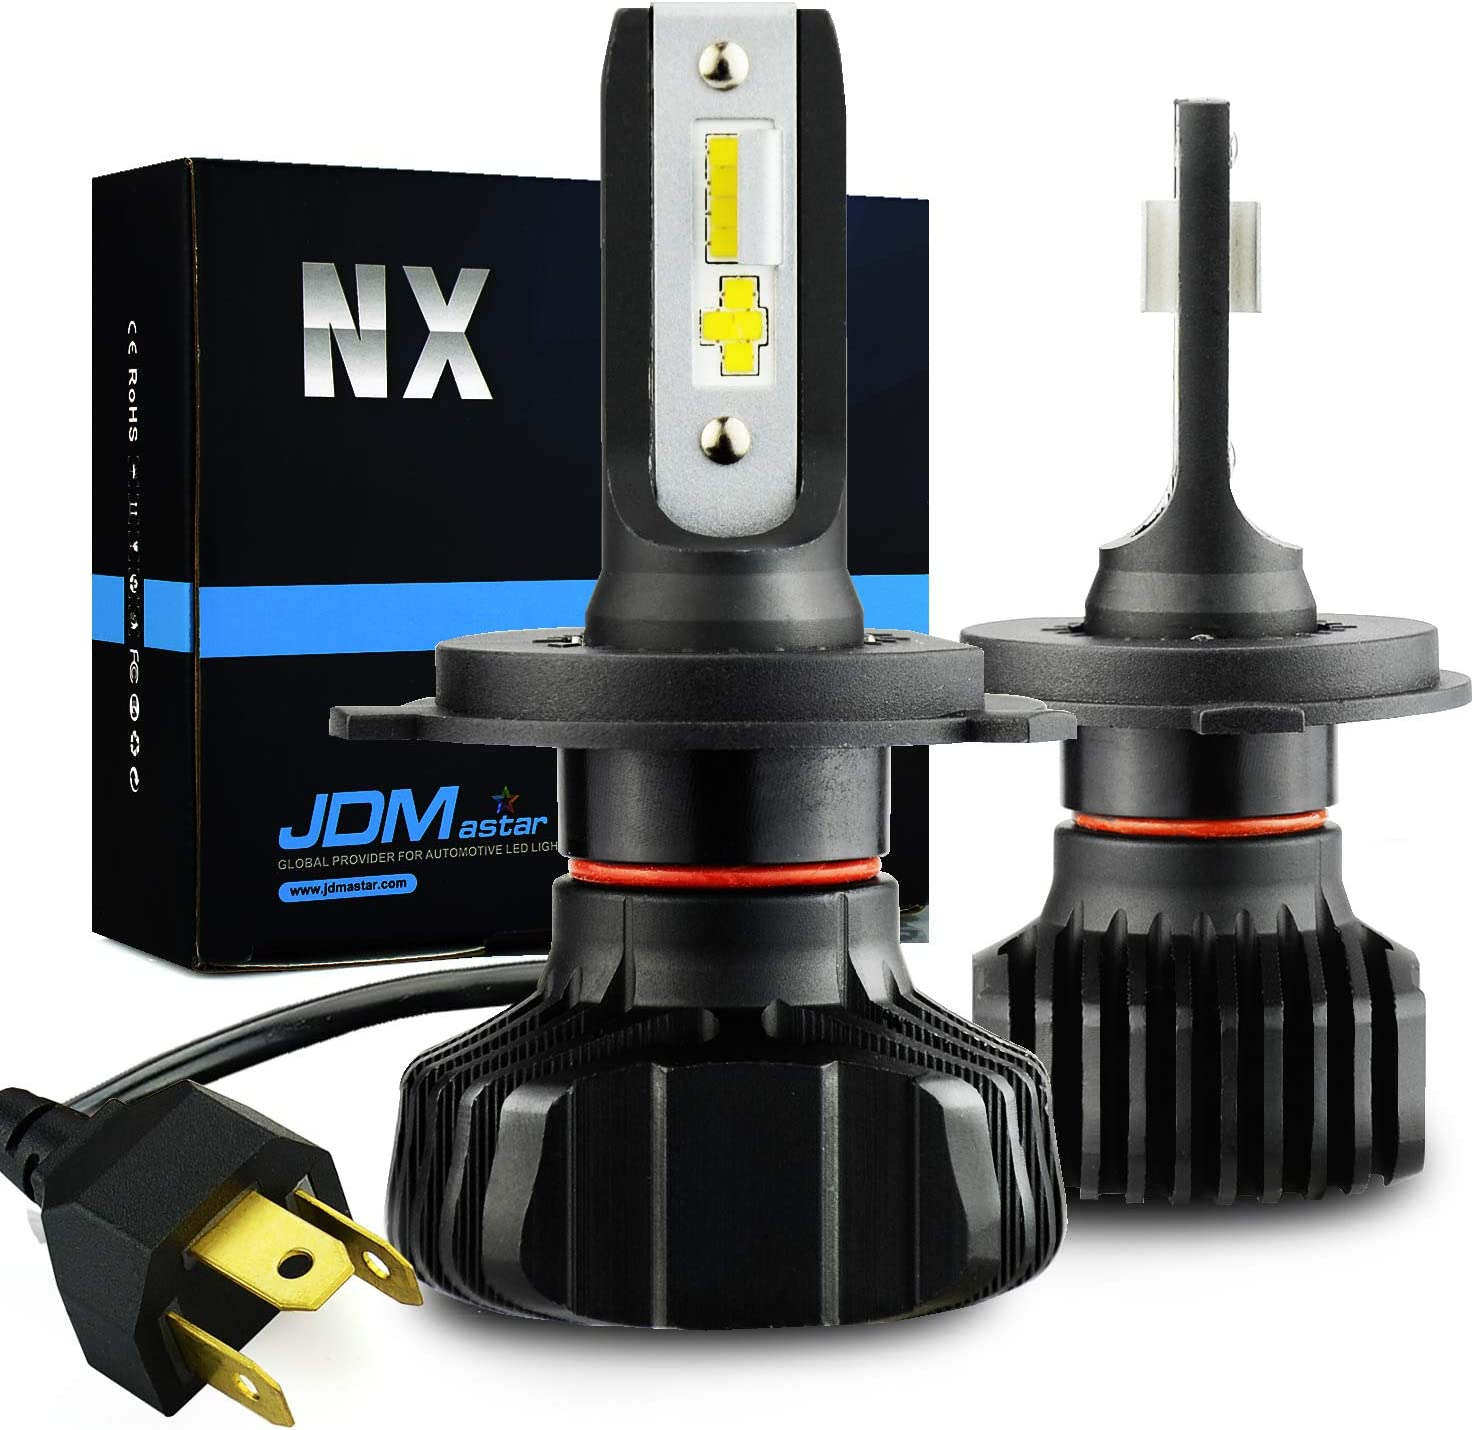 JDM ASTAR NX Fanless Design H4 9003 Up to 60% More Downroad Visibility White LED Headlight Bulbs